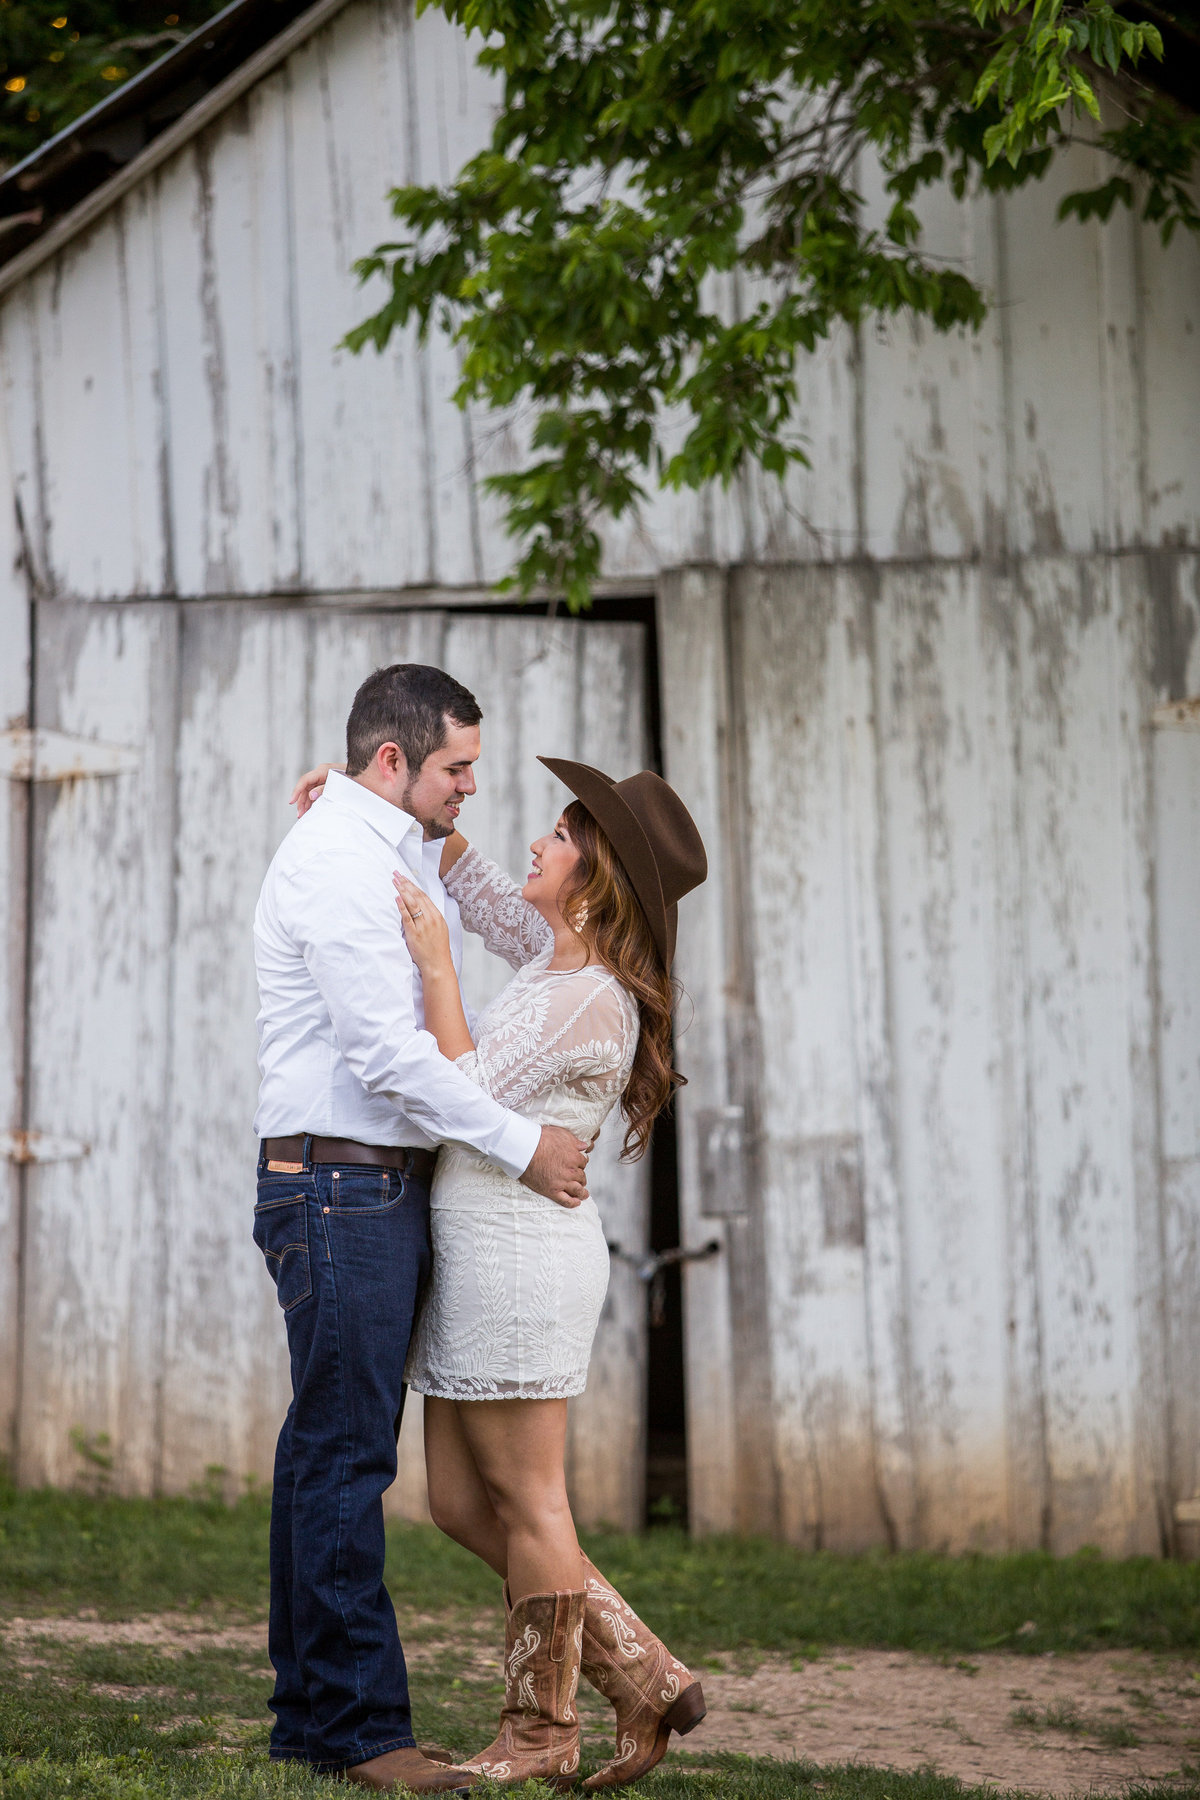 Engagement session a Gruene where woman wears her fiancé's cowboy hat and lifts her leg.